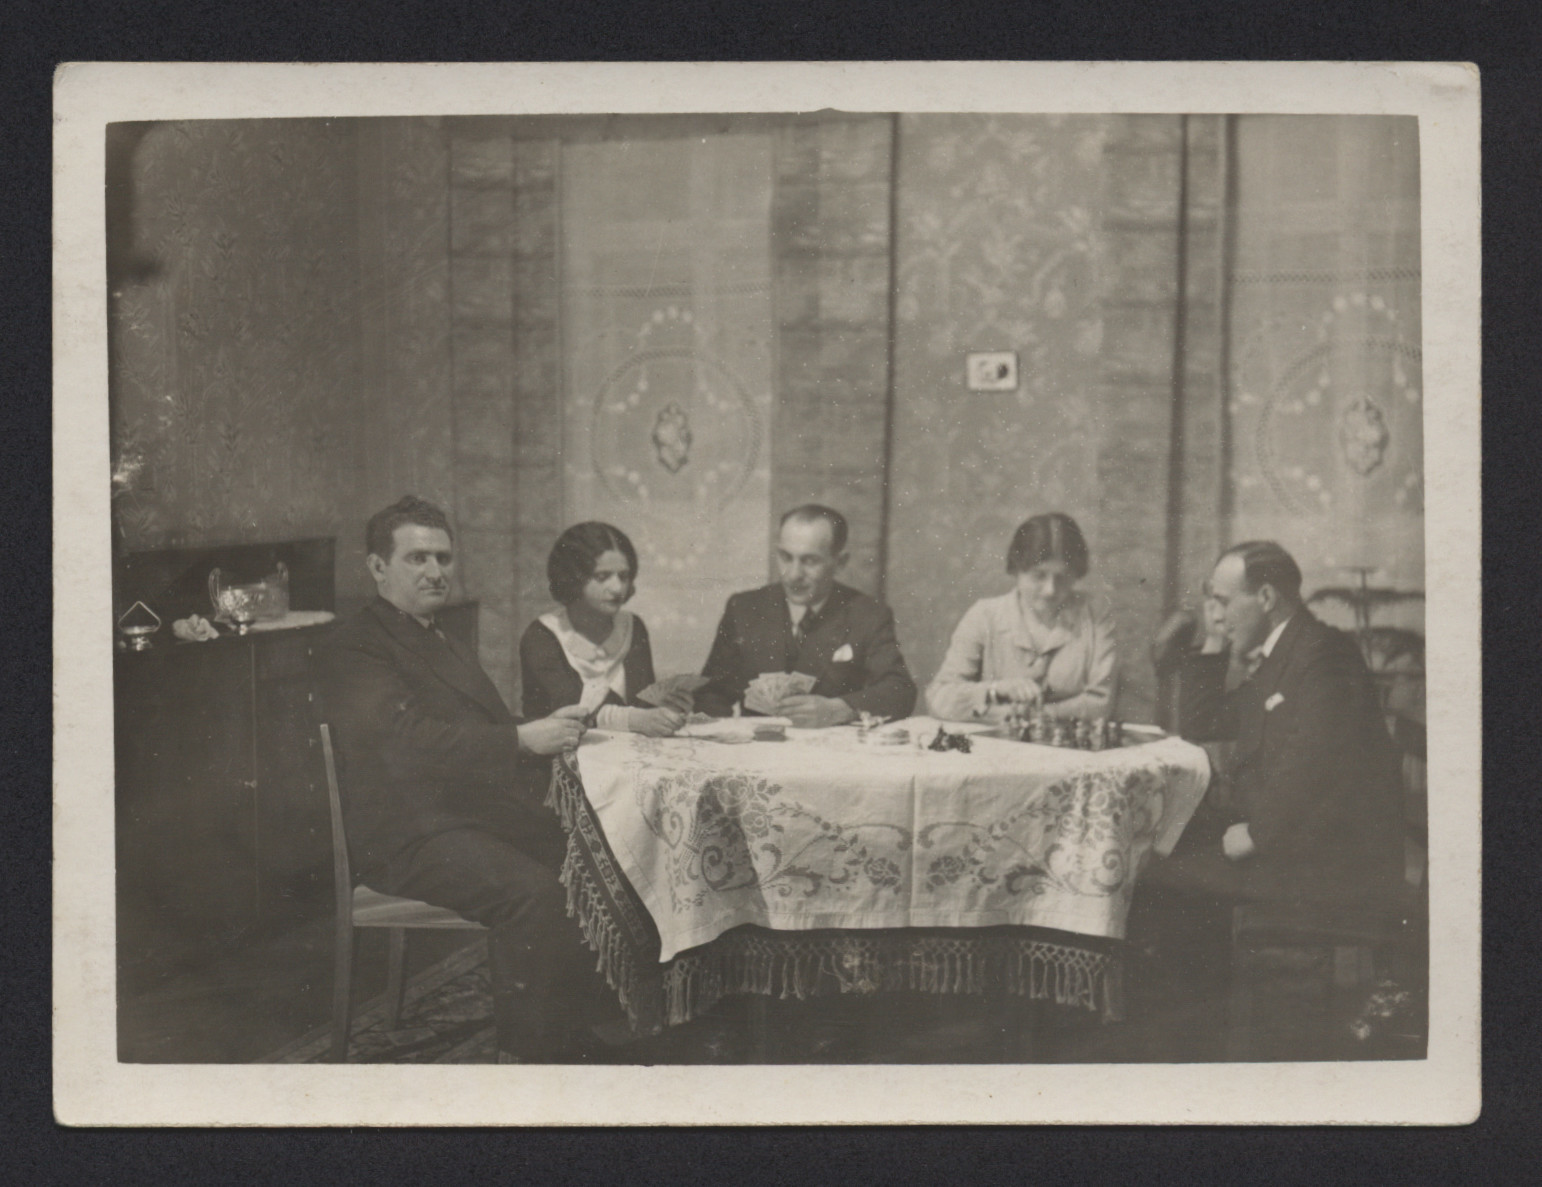 Juda and Schifra Tepper entertain guests in their apartment in Vienna.  Juda is pictured on the far left; Schifra is pictured  on the right, playing chess.